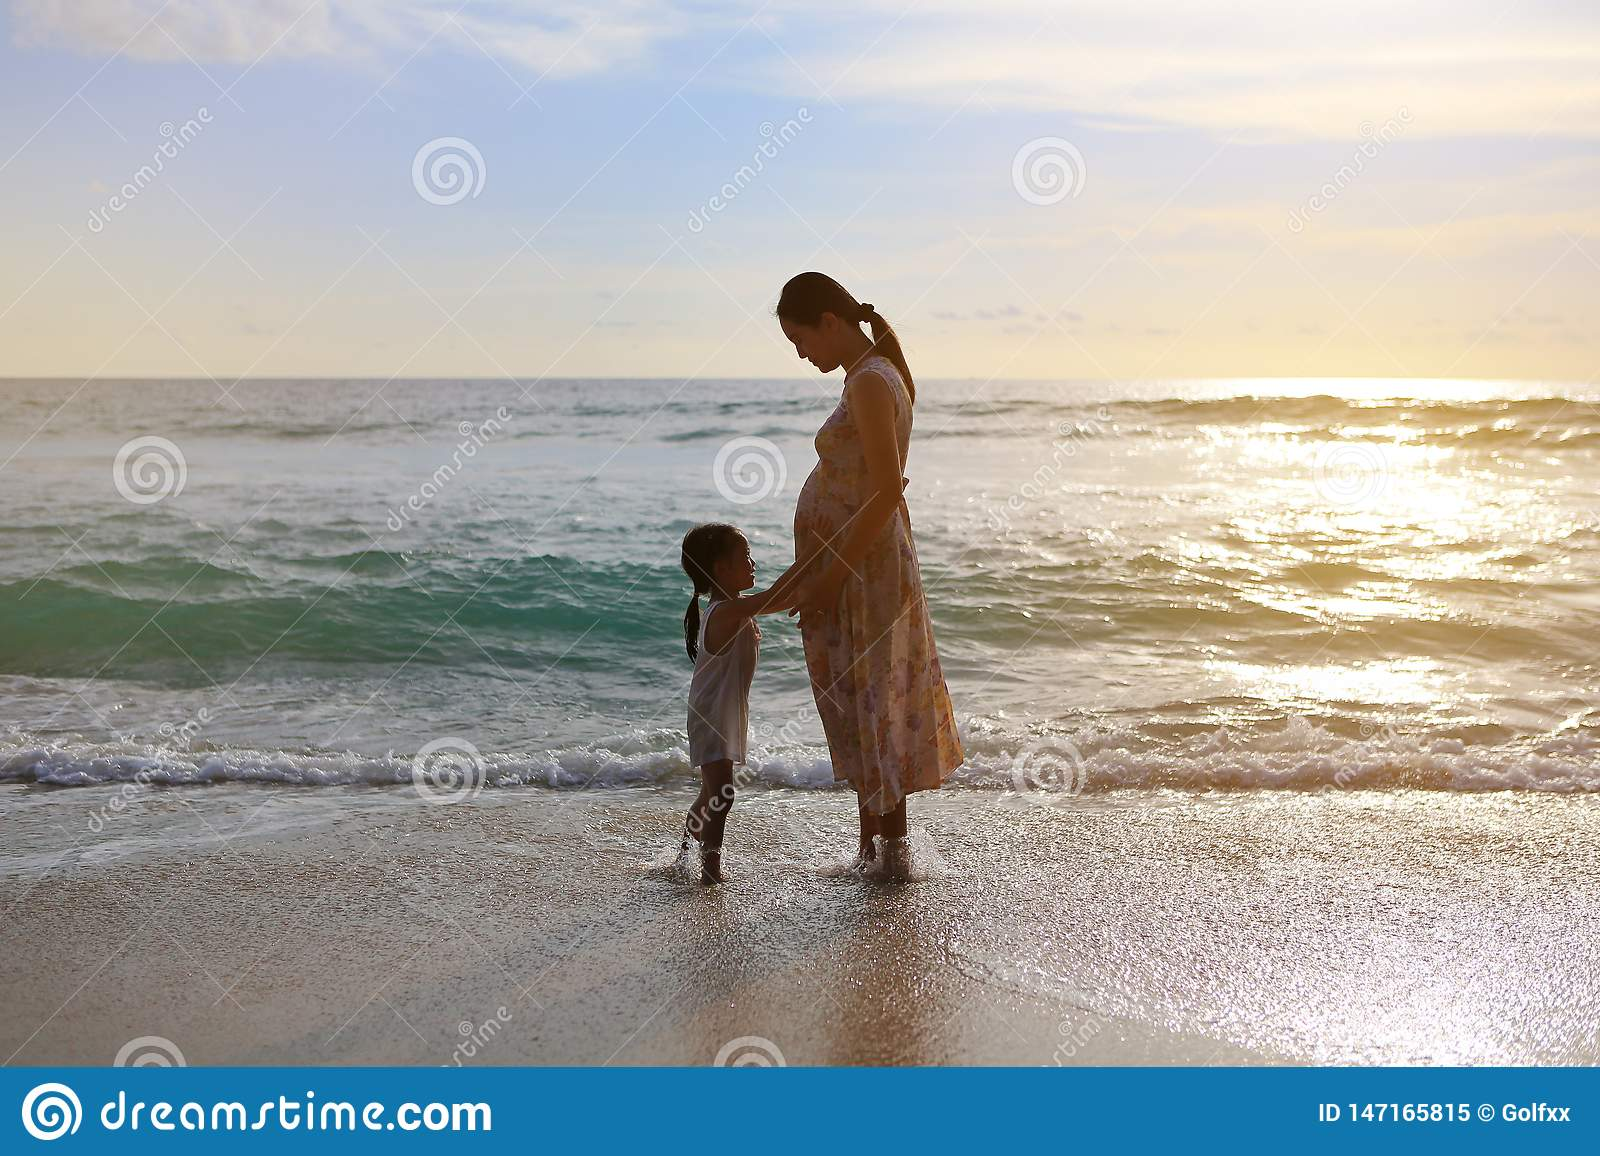 Silhouette daughter touching belly of pregnant mother and relaxing on the beach at sunset